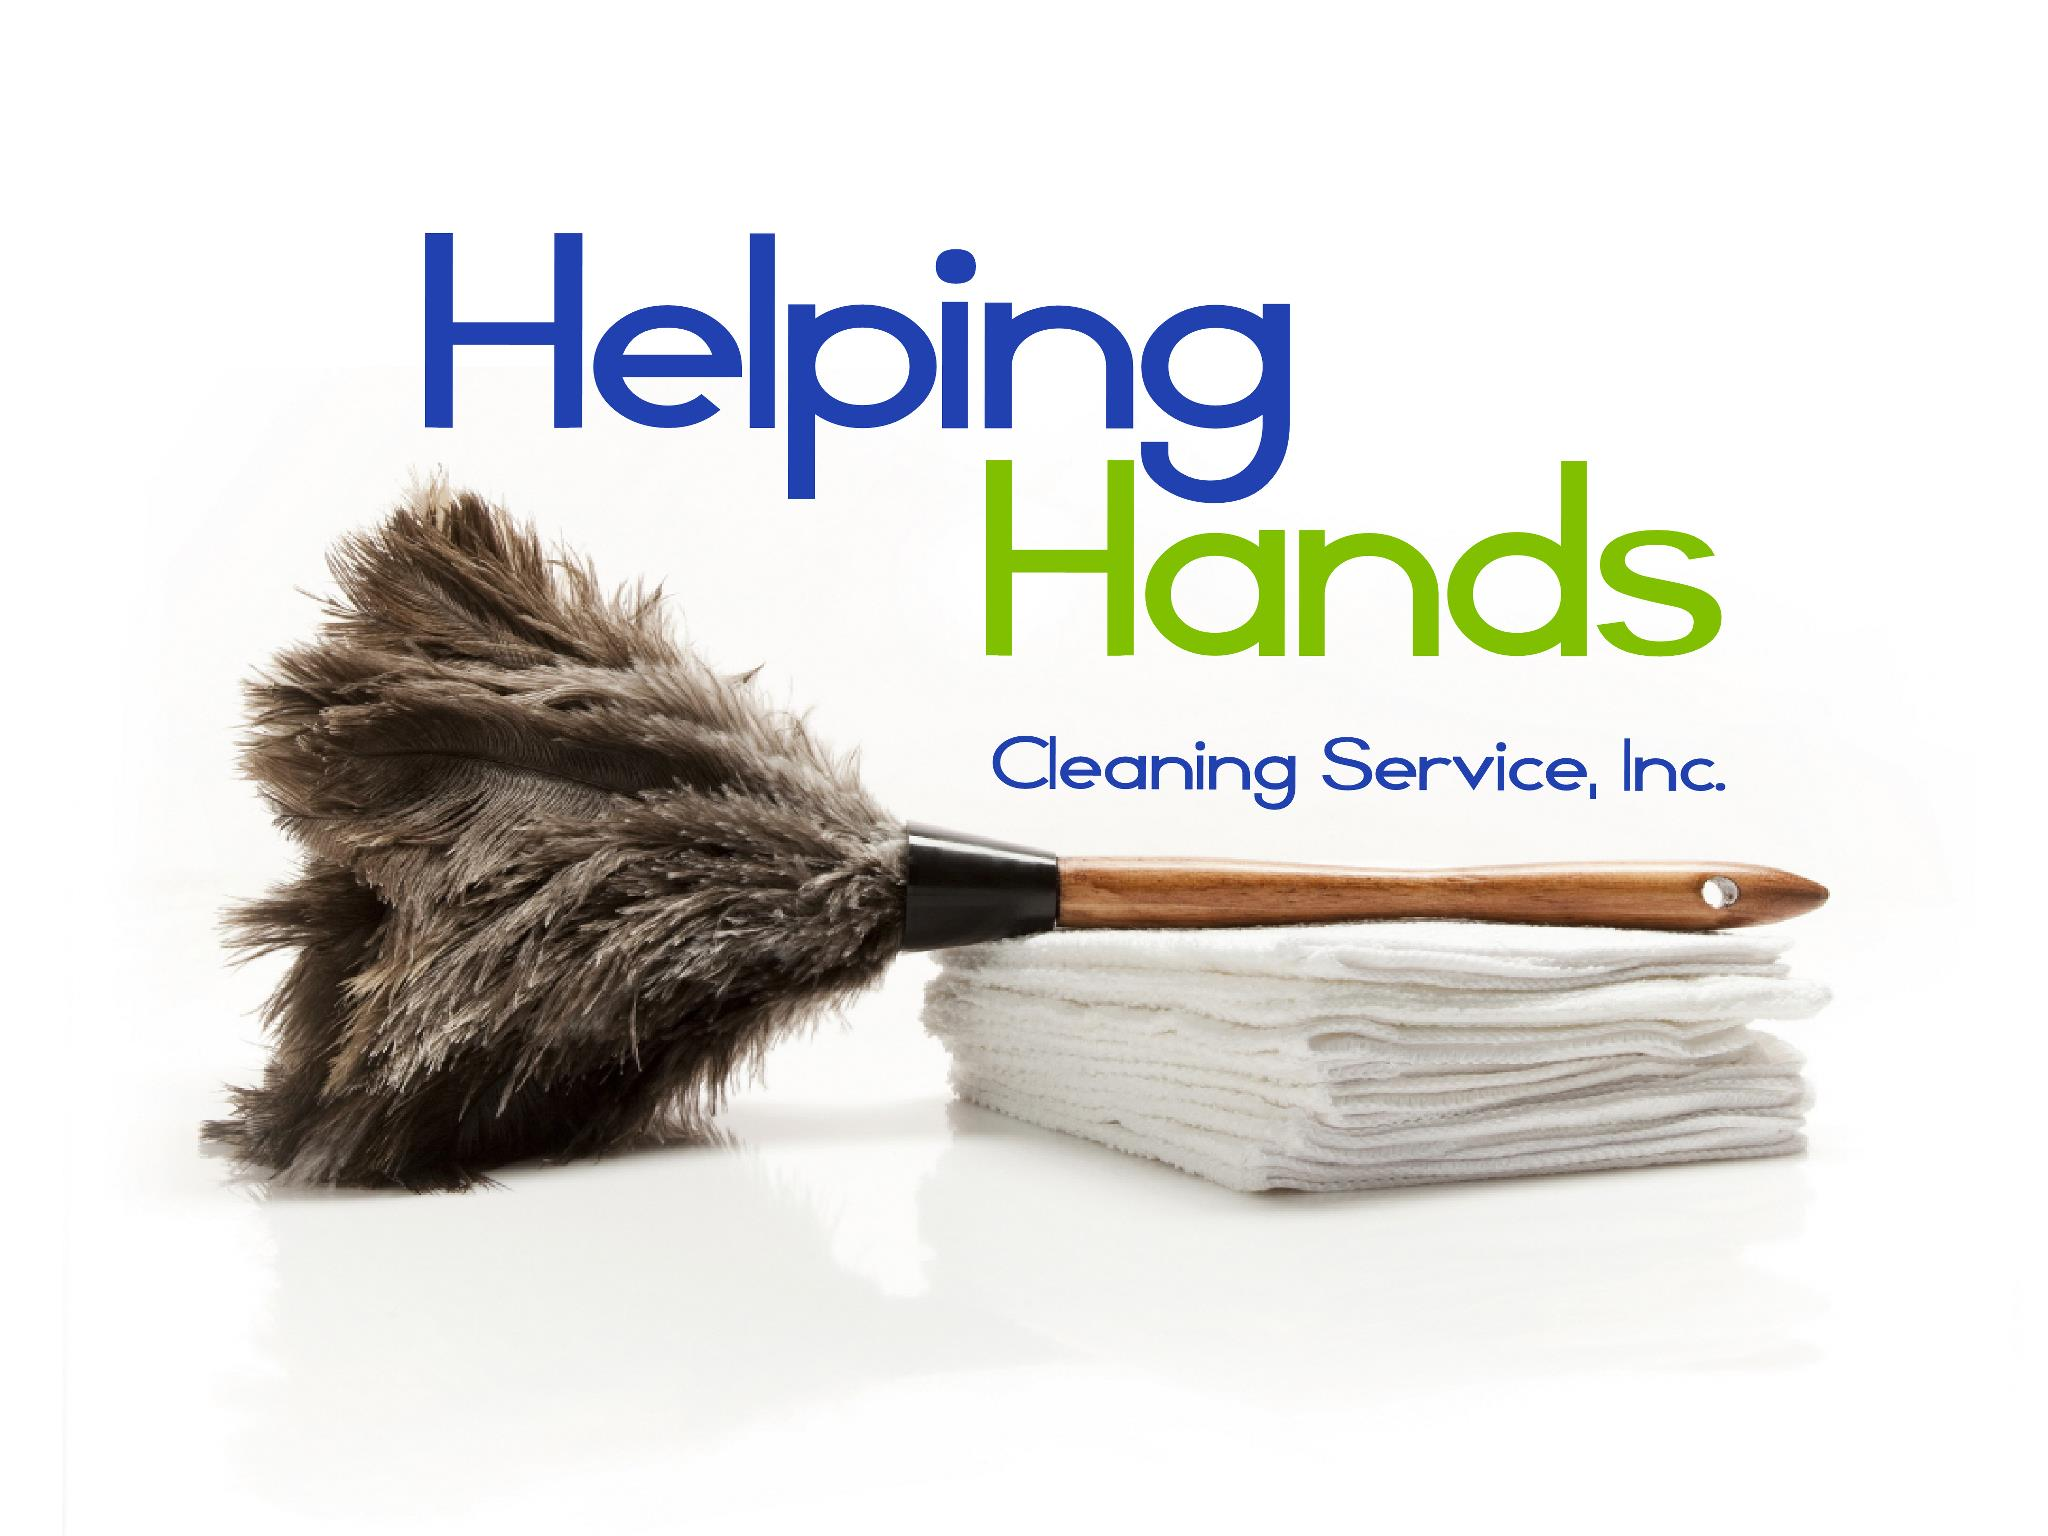 North Carolina's Top Rated Local® House Cleaning Companies Award Winner: Helping Hands Cleaning Services